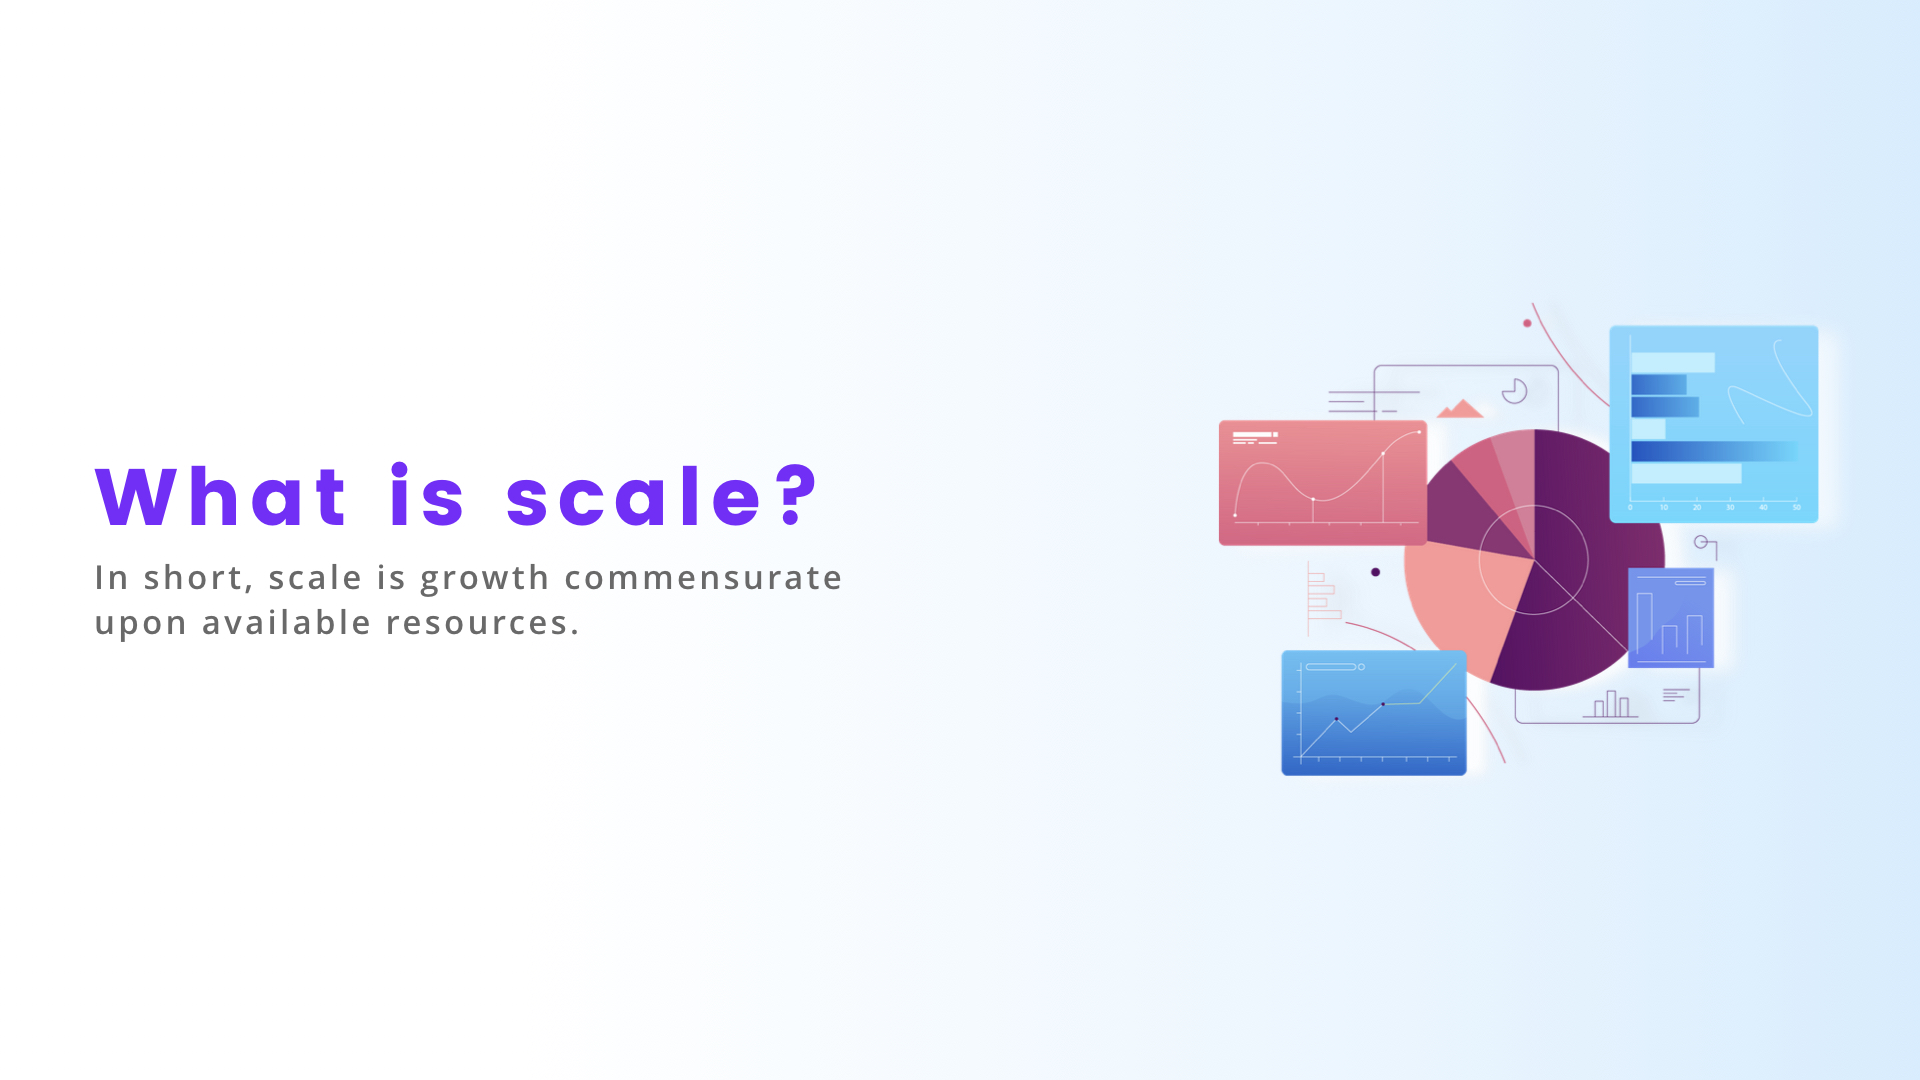 What is scale?